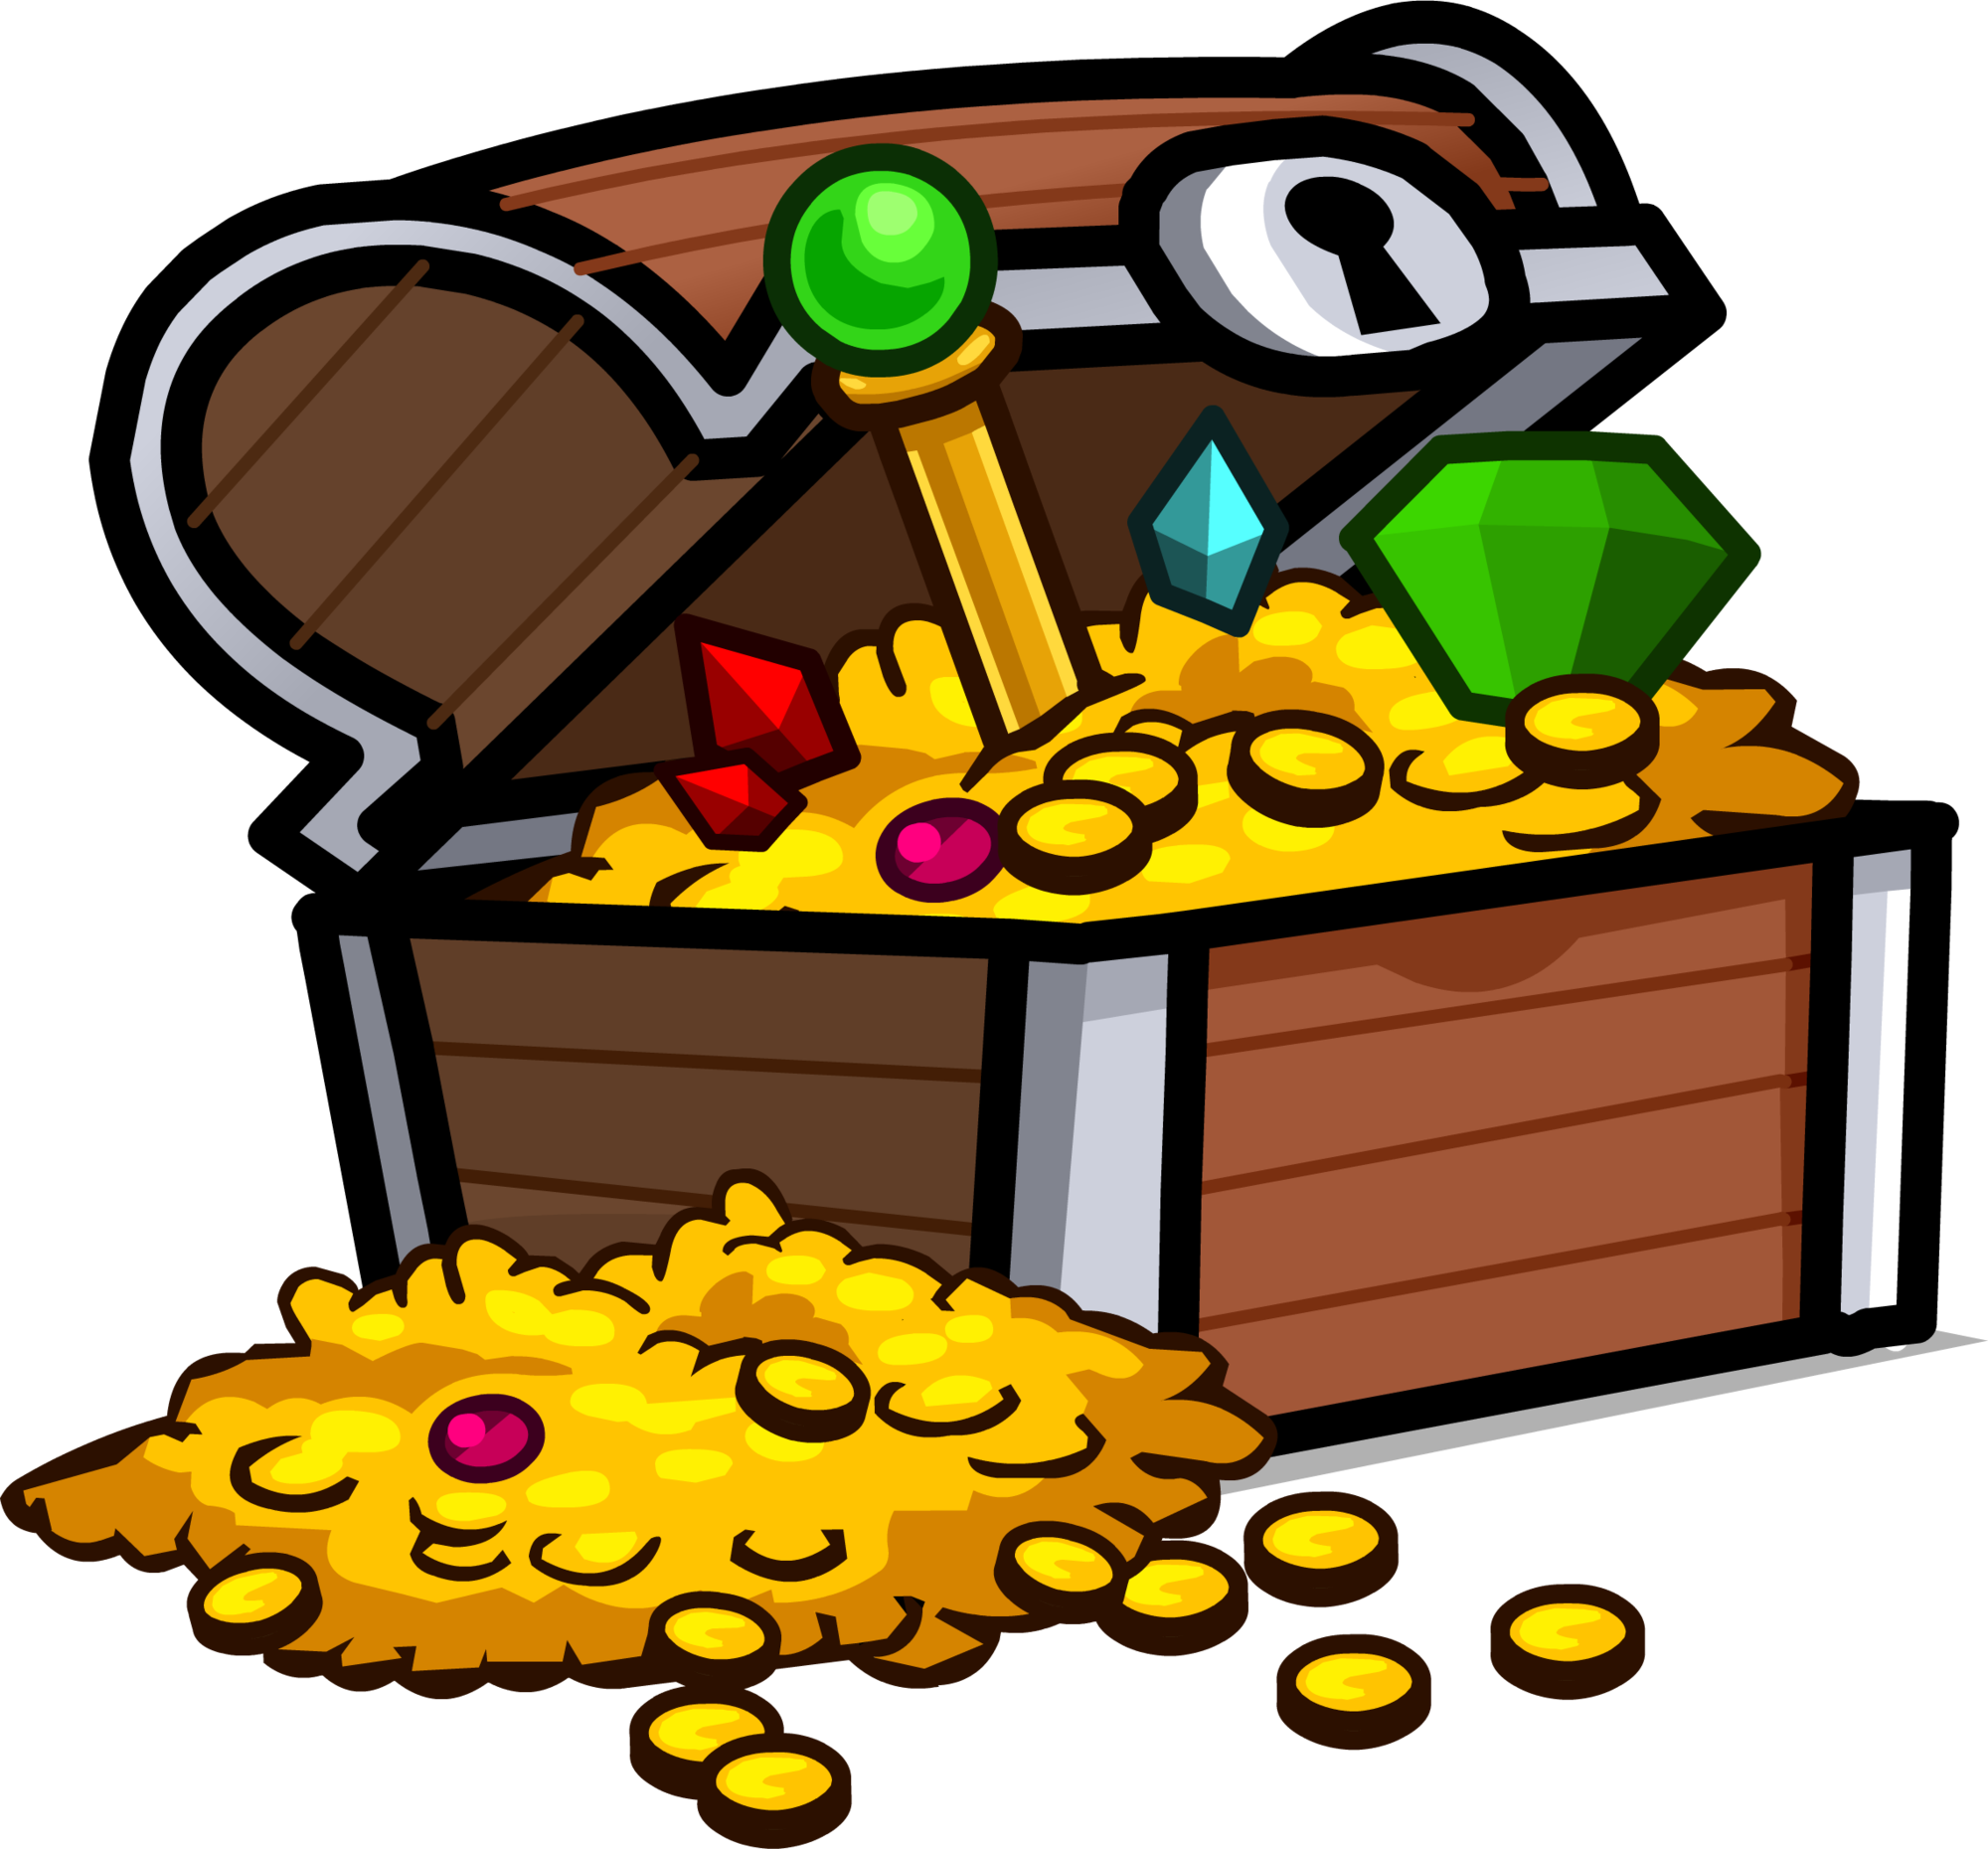 Treasure clipart underwate treasure. Chest club penguin wiki